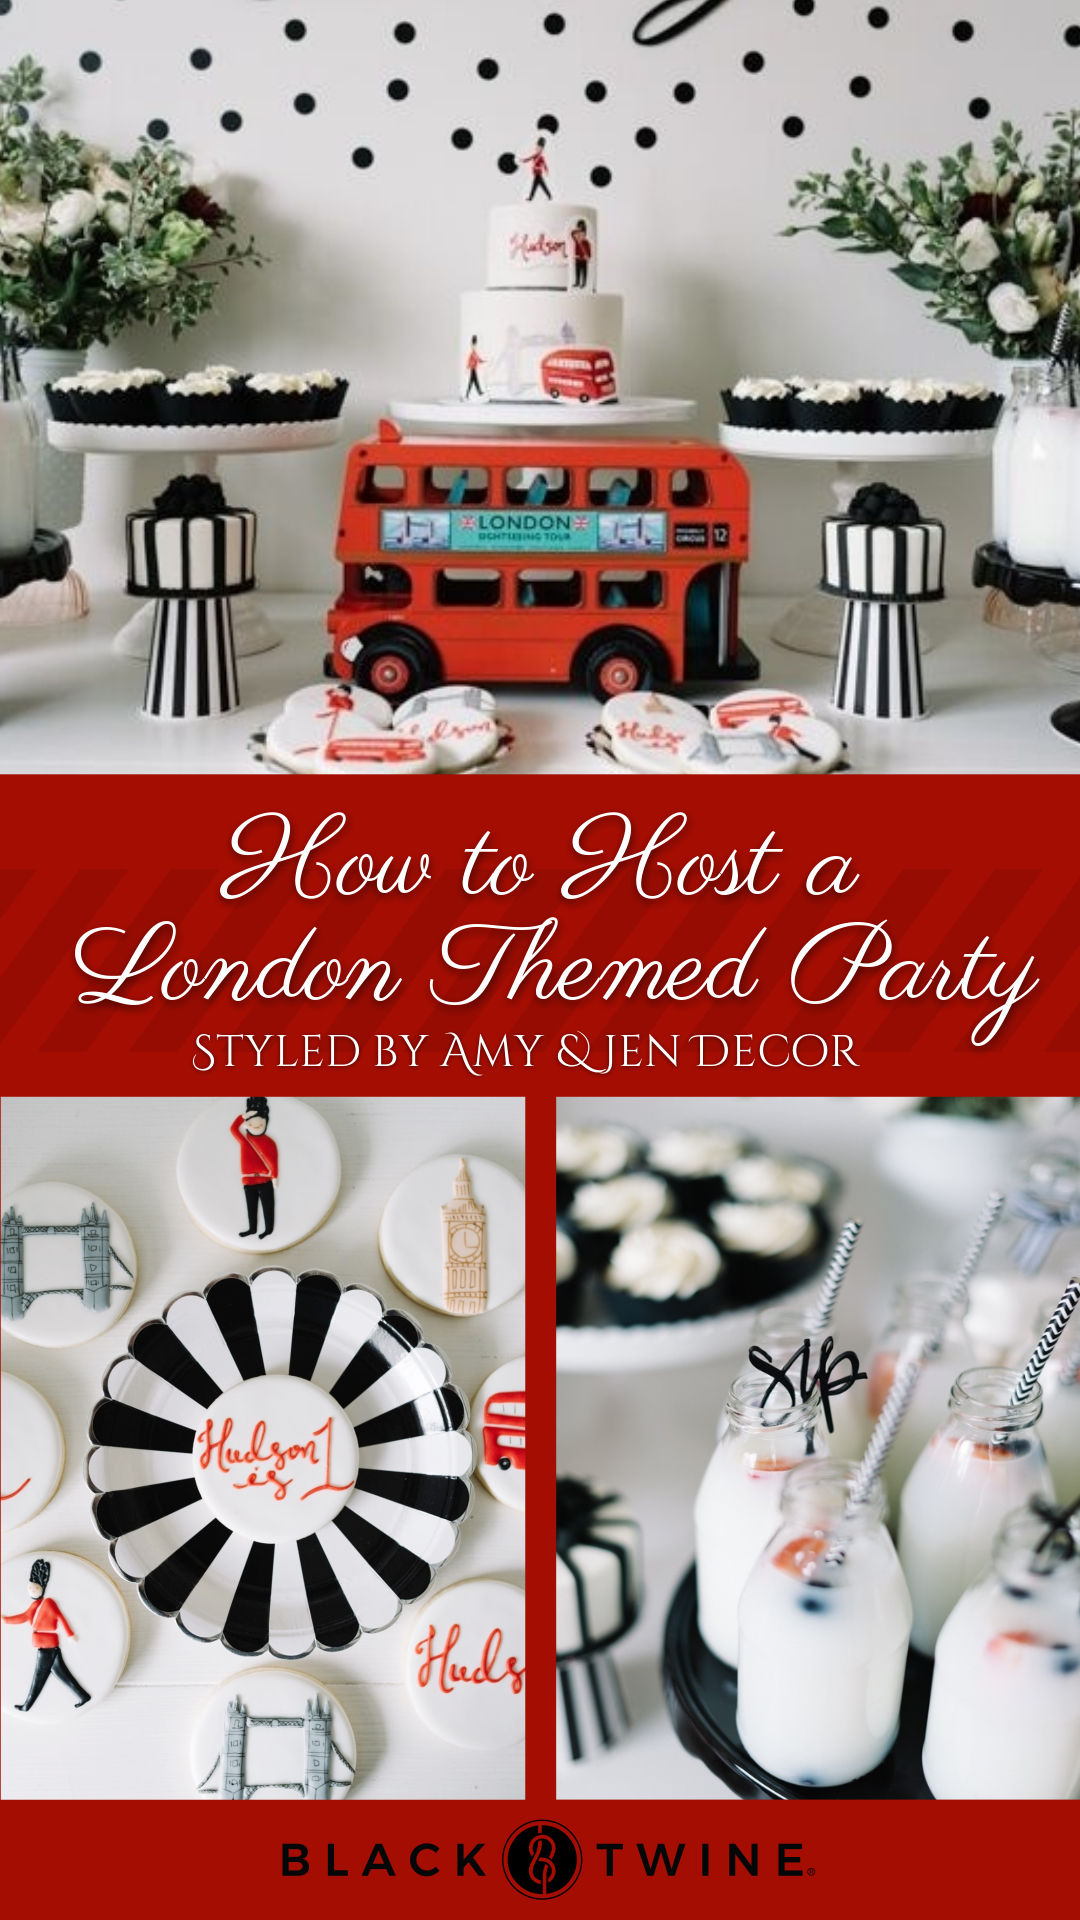 How to Throw a London themed party | Black Twine | Amy & Jen Decor